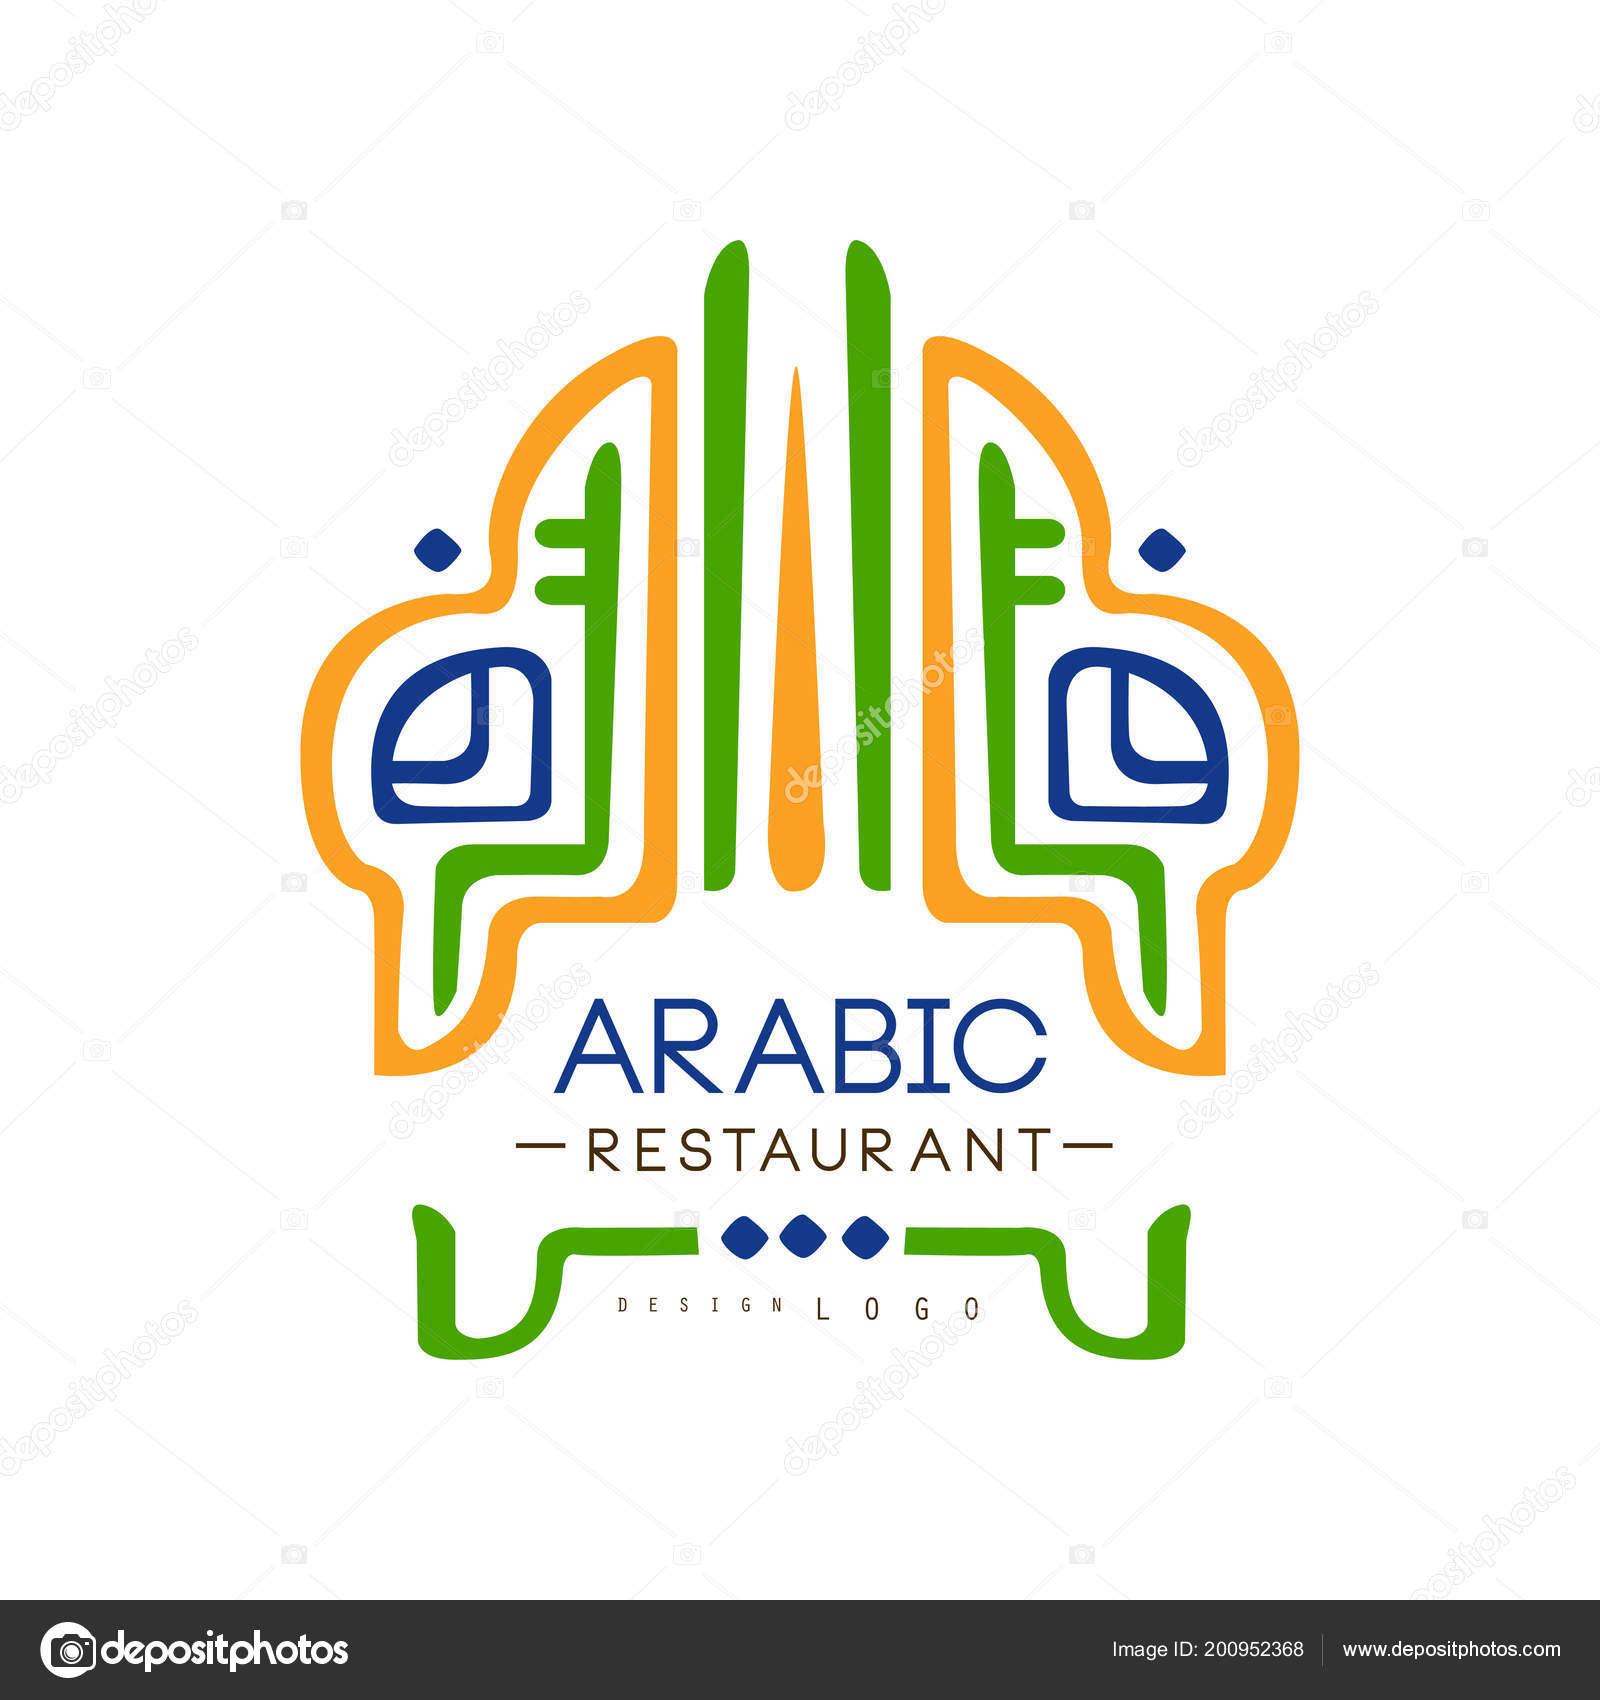 Arabic Restaurant Cuisine Logo Design Authentic Traditional Continental Food Label Can Be Used For Cafe Bar Restaurant Menu Vector Illustration On A White Background Stock Vector C Topvectors 200952368